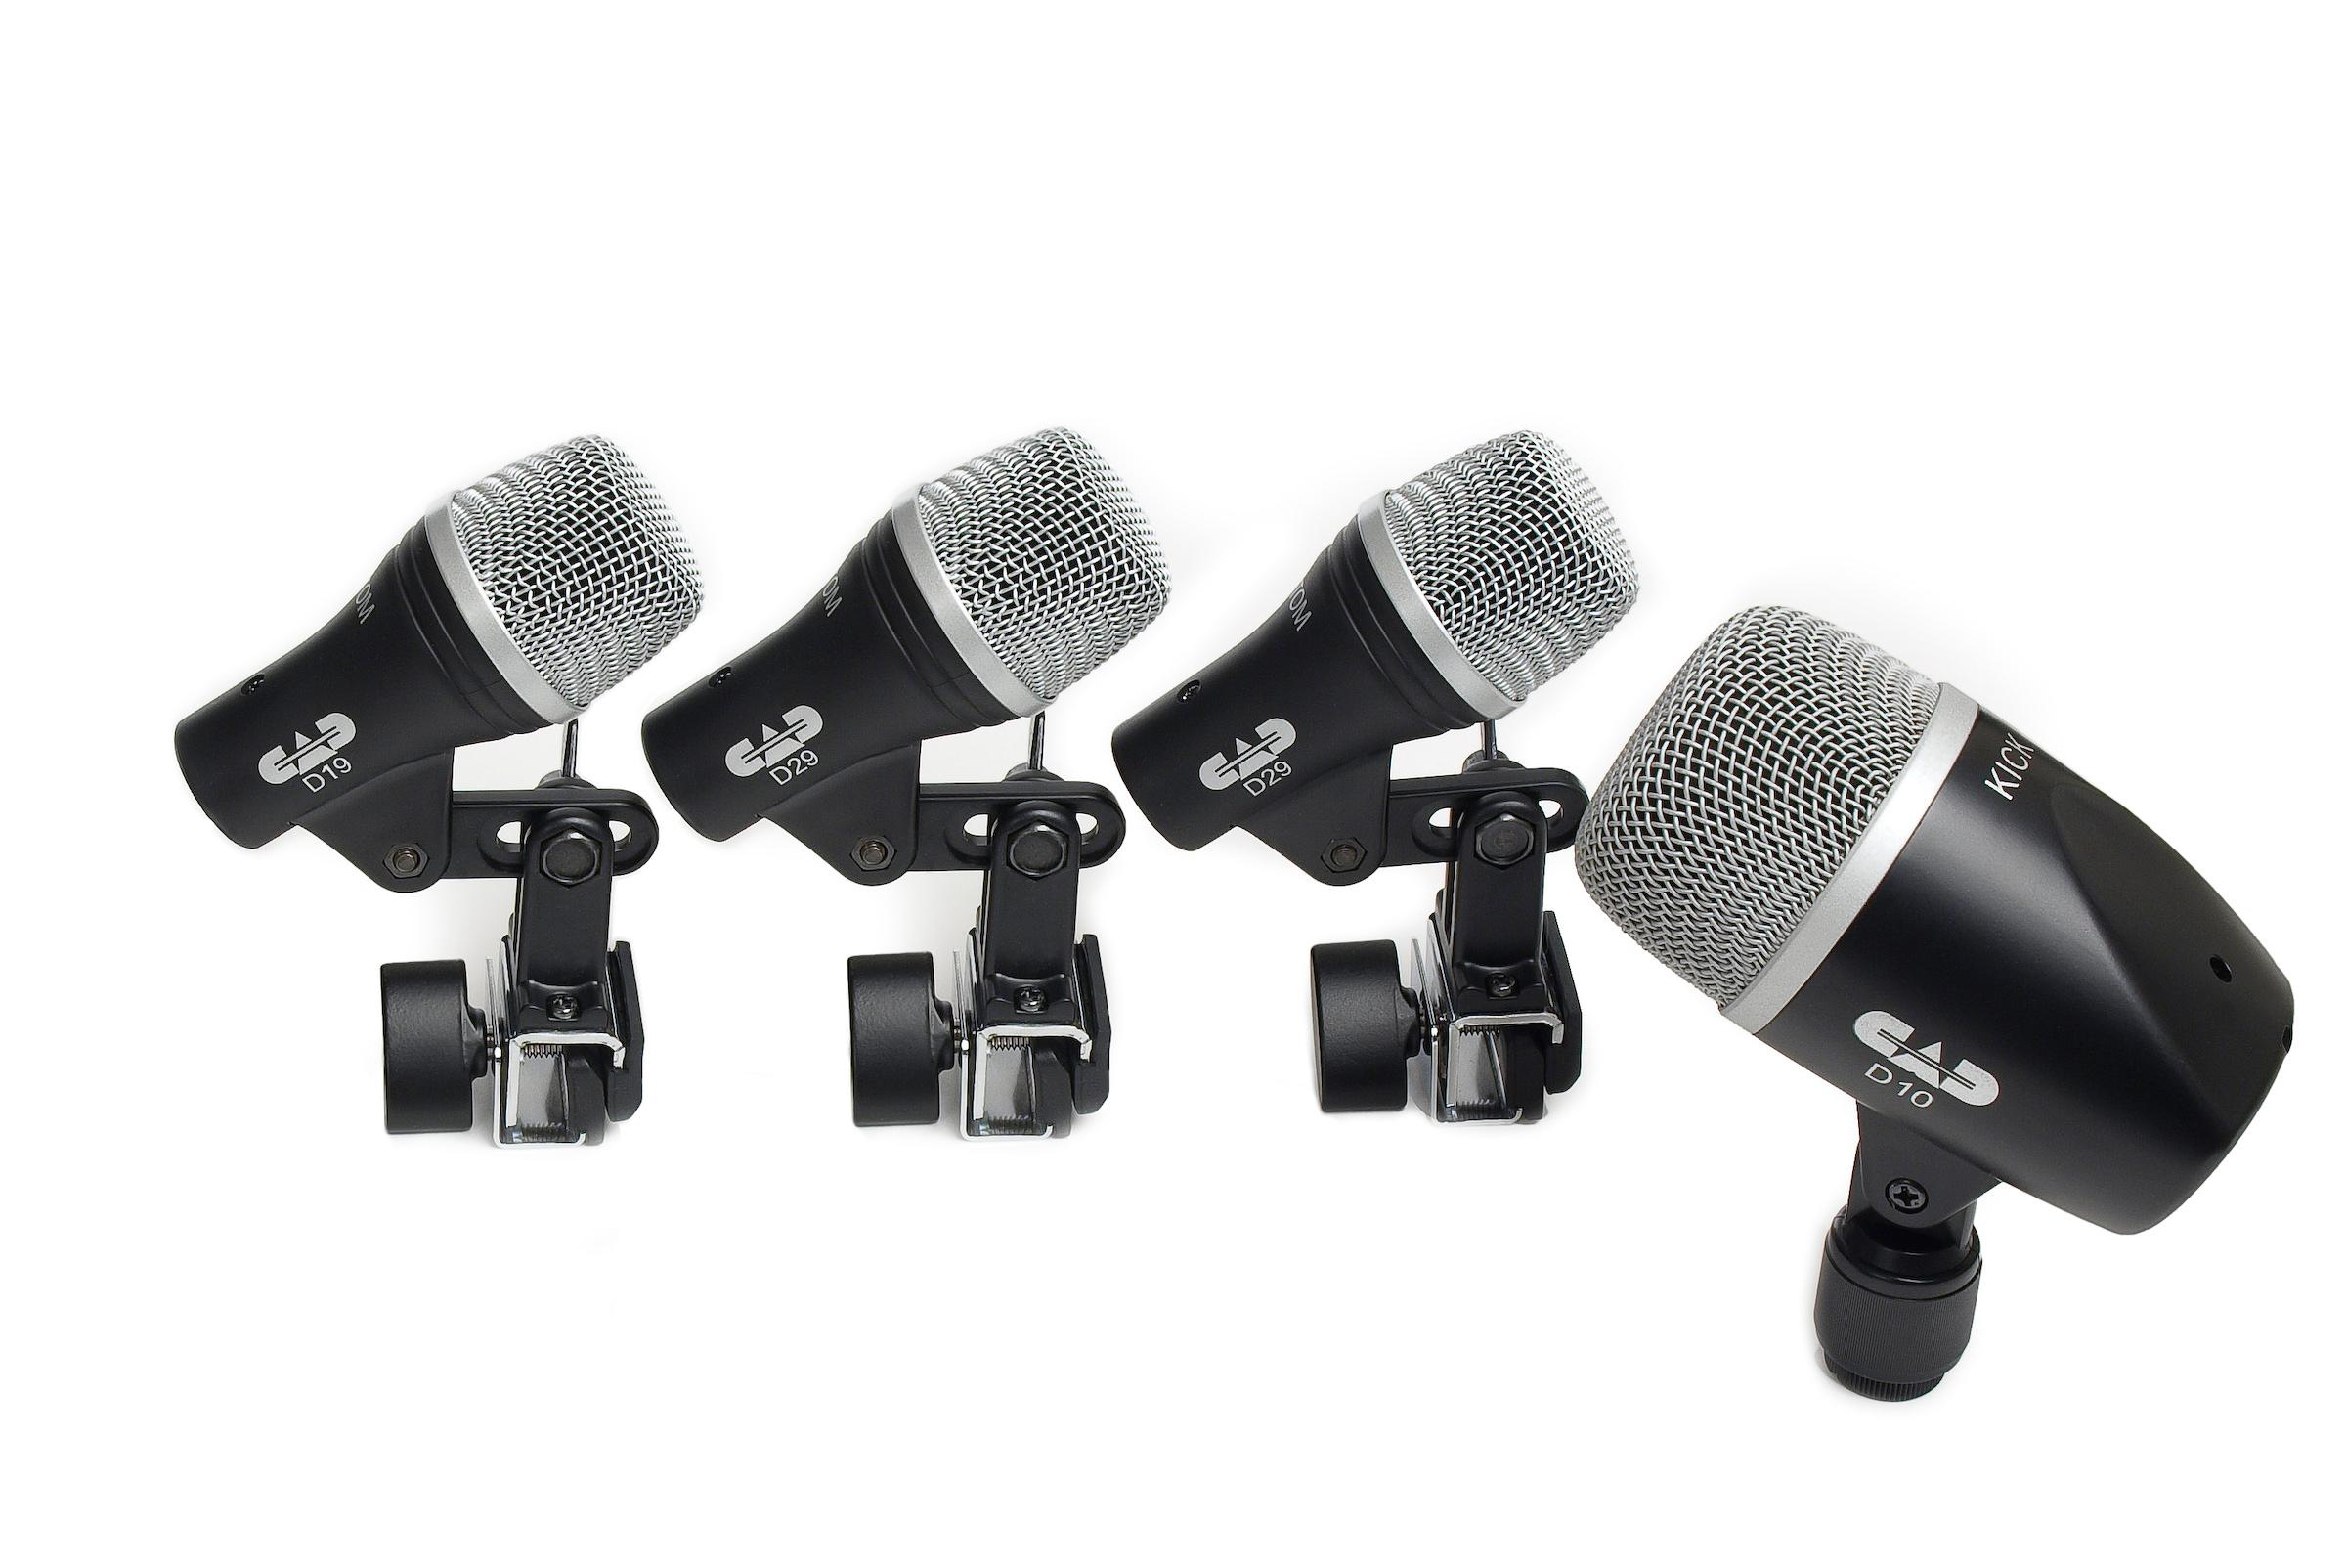 cad audio stage4 4 piece drum mic pack includes kick mic snare mic and 2 tom mics. Black Bedroom Furniture Sets. Home Design Ideas